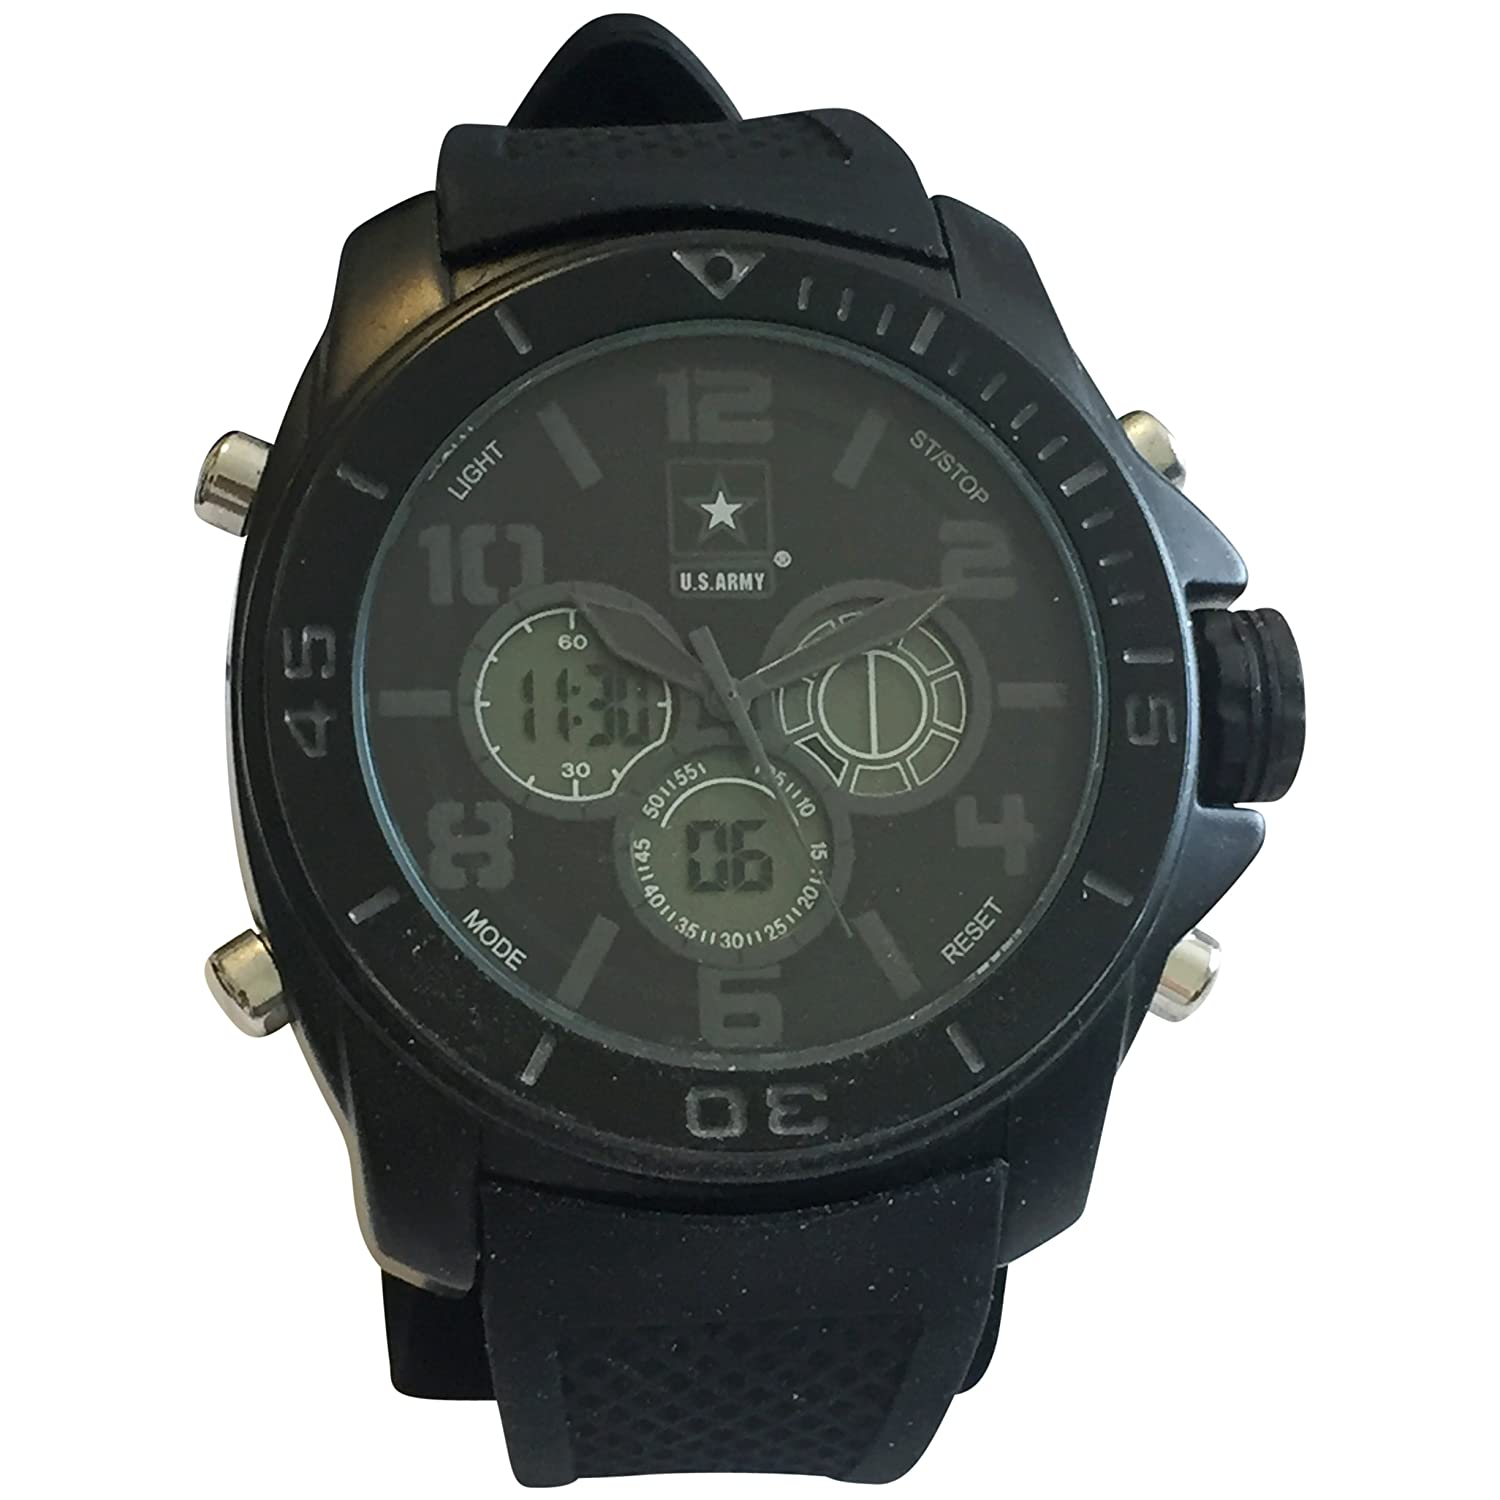 Amazon.com: US Army Wrist Armor C24 Watch Blk Stealth Dial & Blk Rubber Strap: Watches